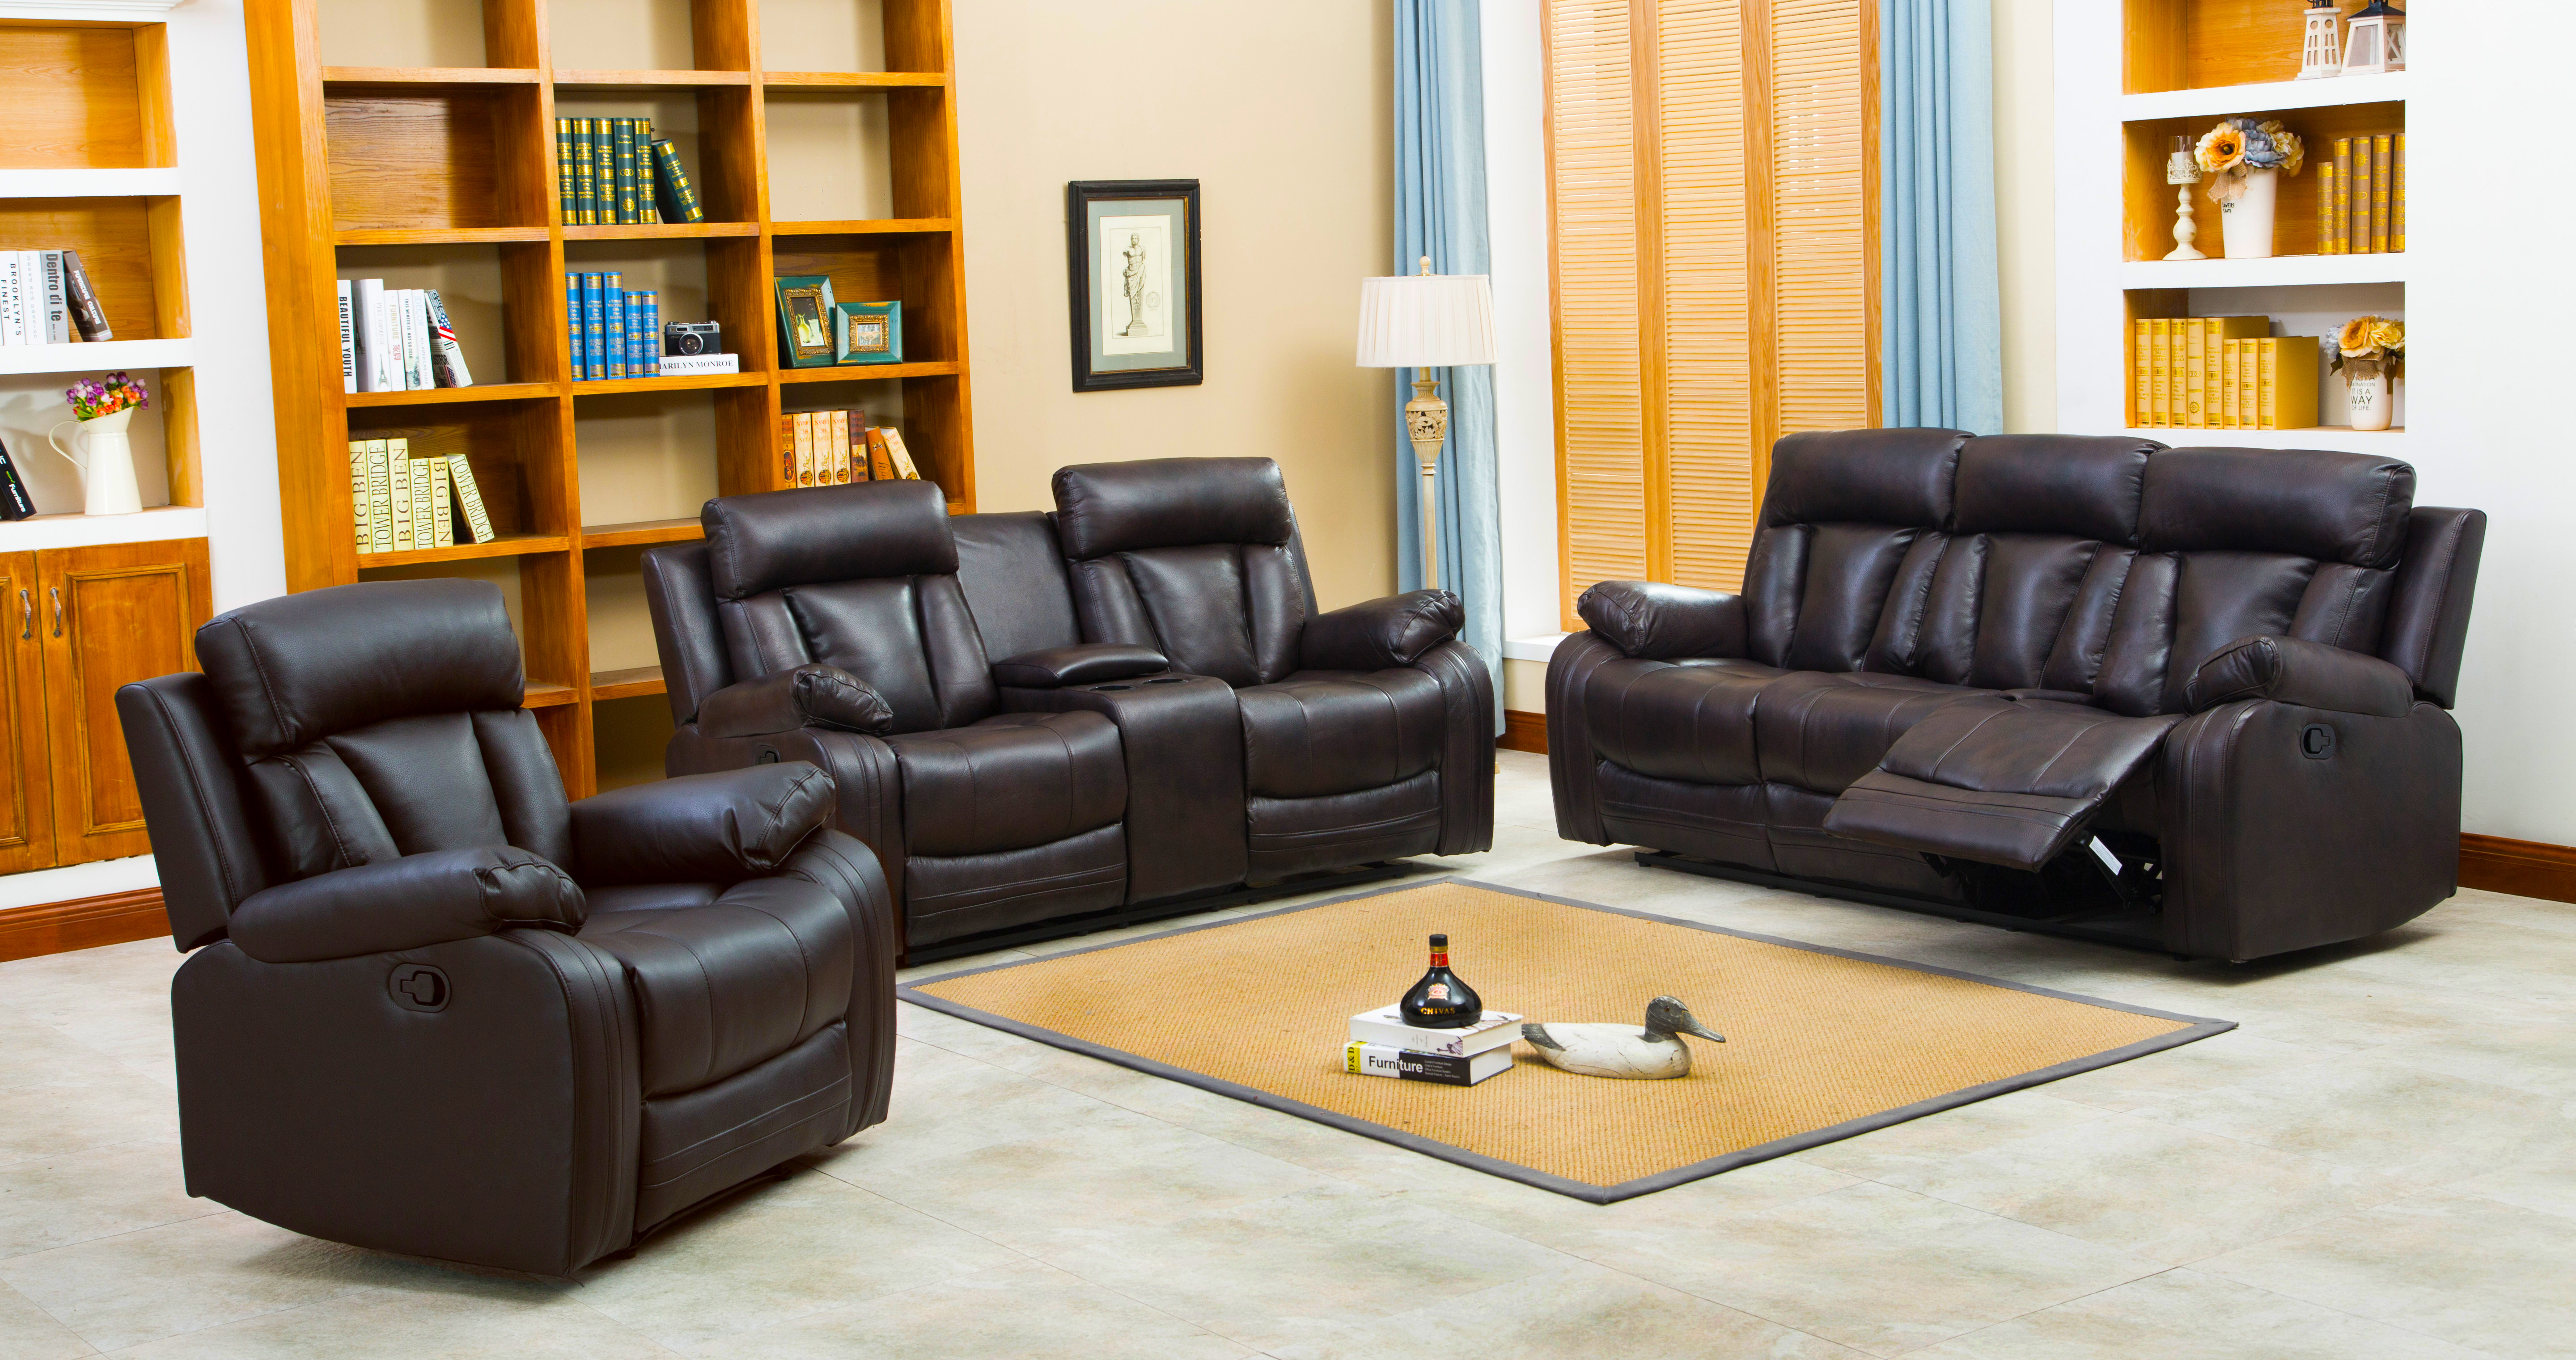 Naples Reclining Sofa Loveseat W Cupholders And Console Set Furniture Distribution Center